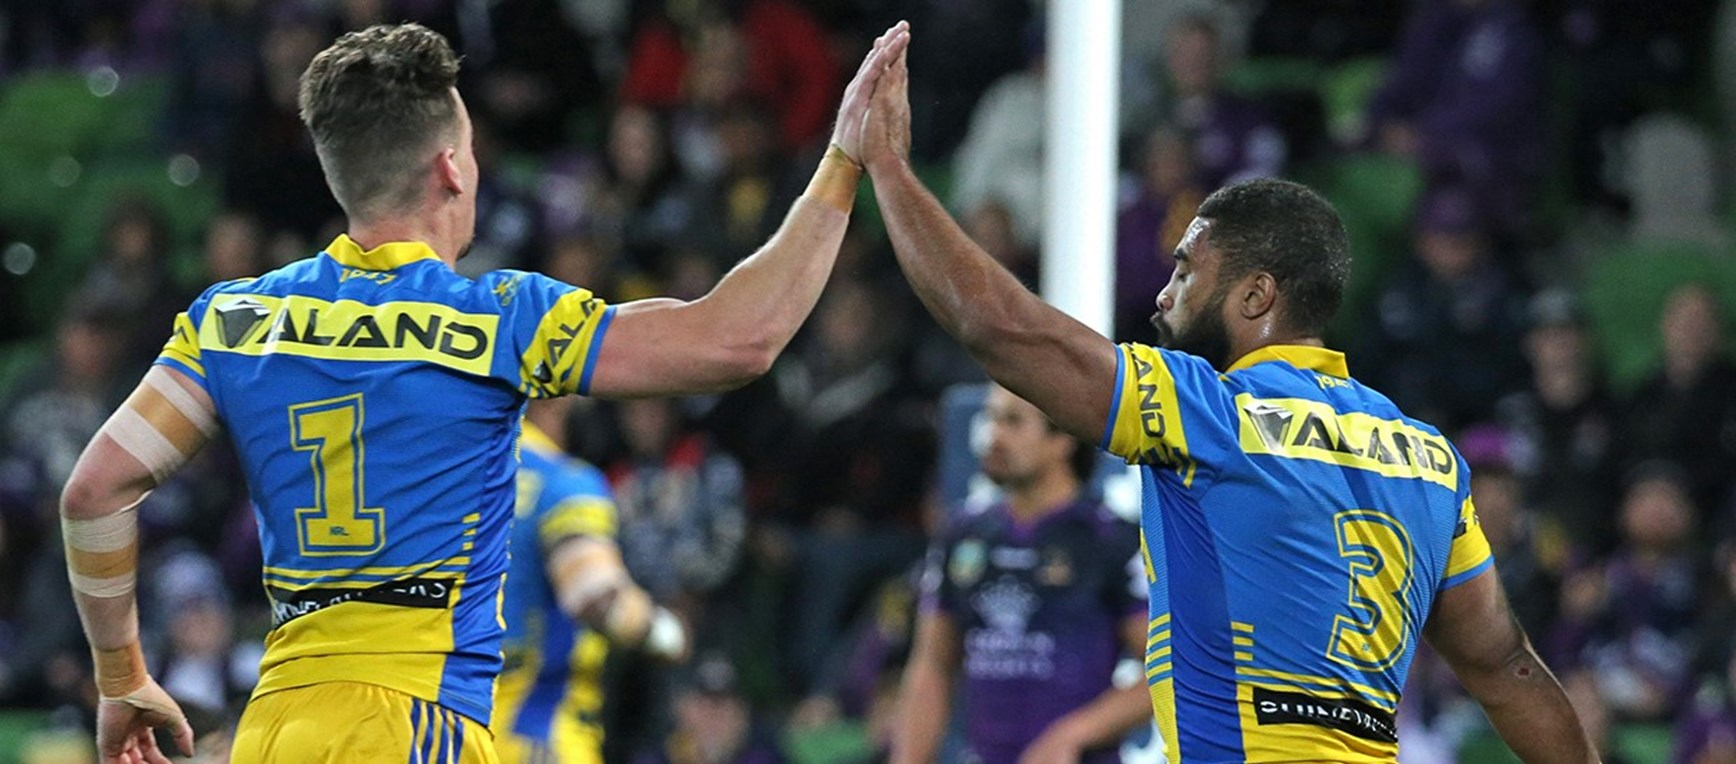 GALLERY | Eels v Storm, Round 18